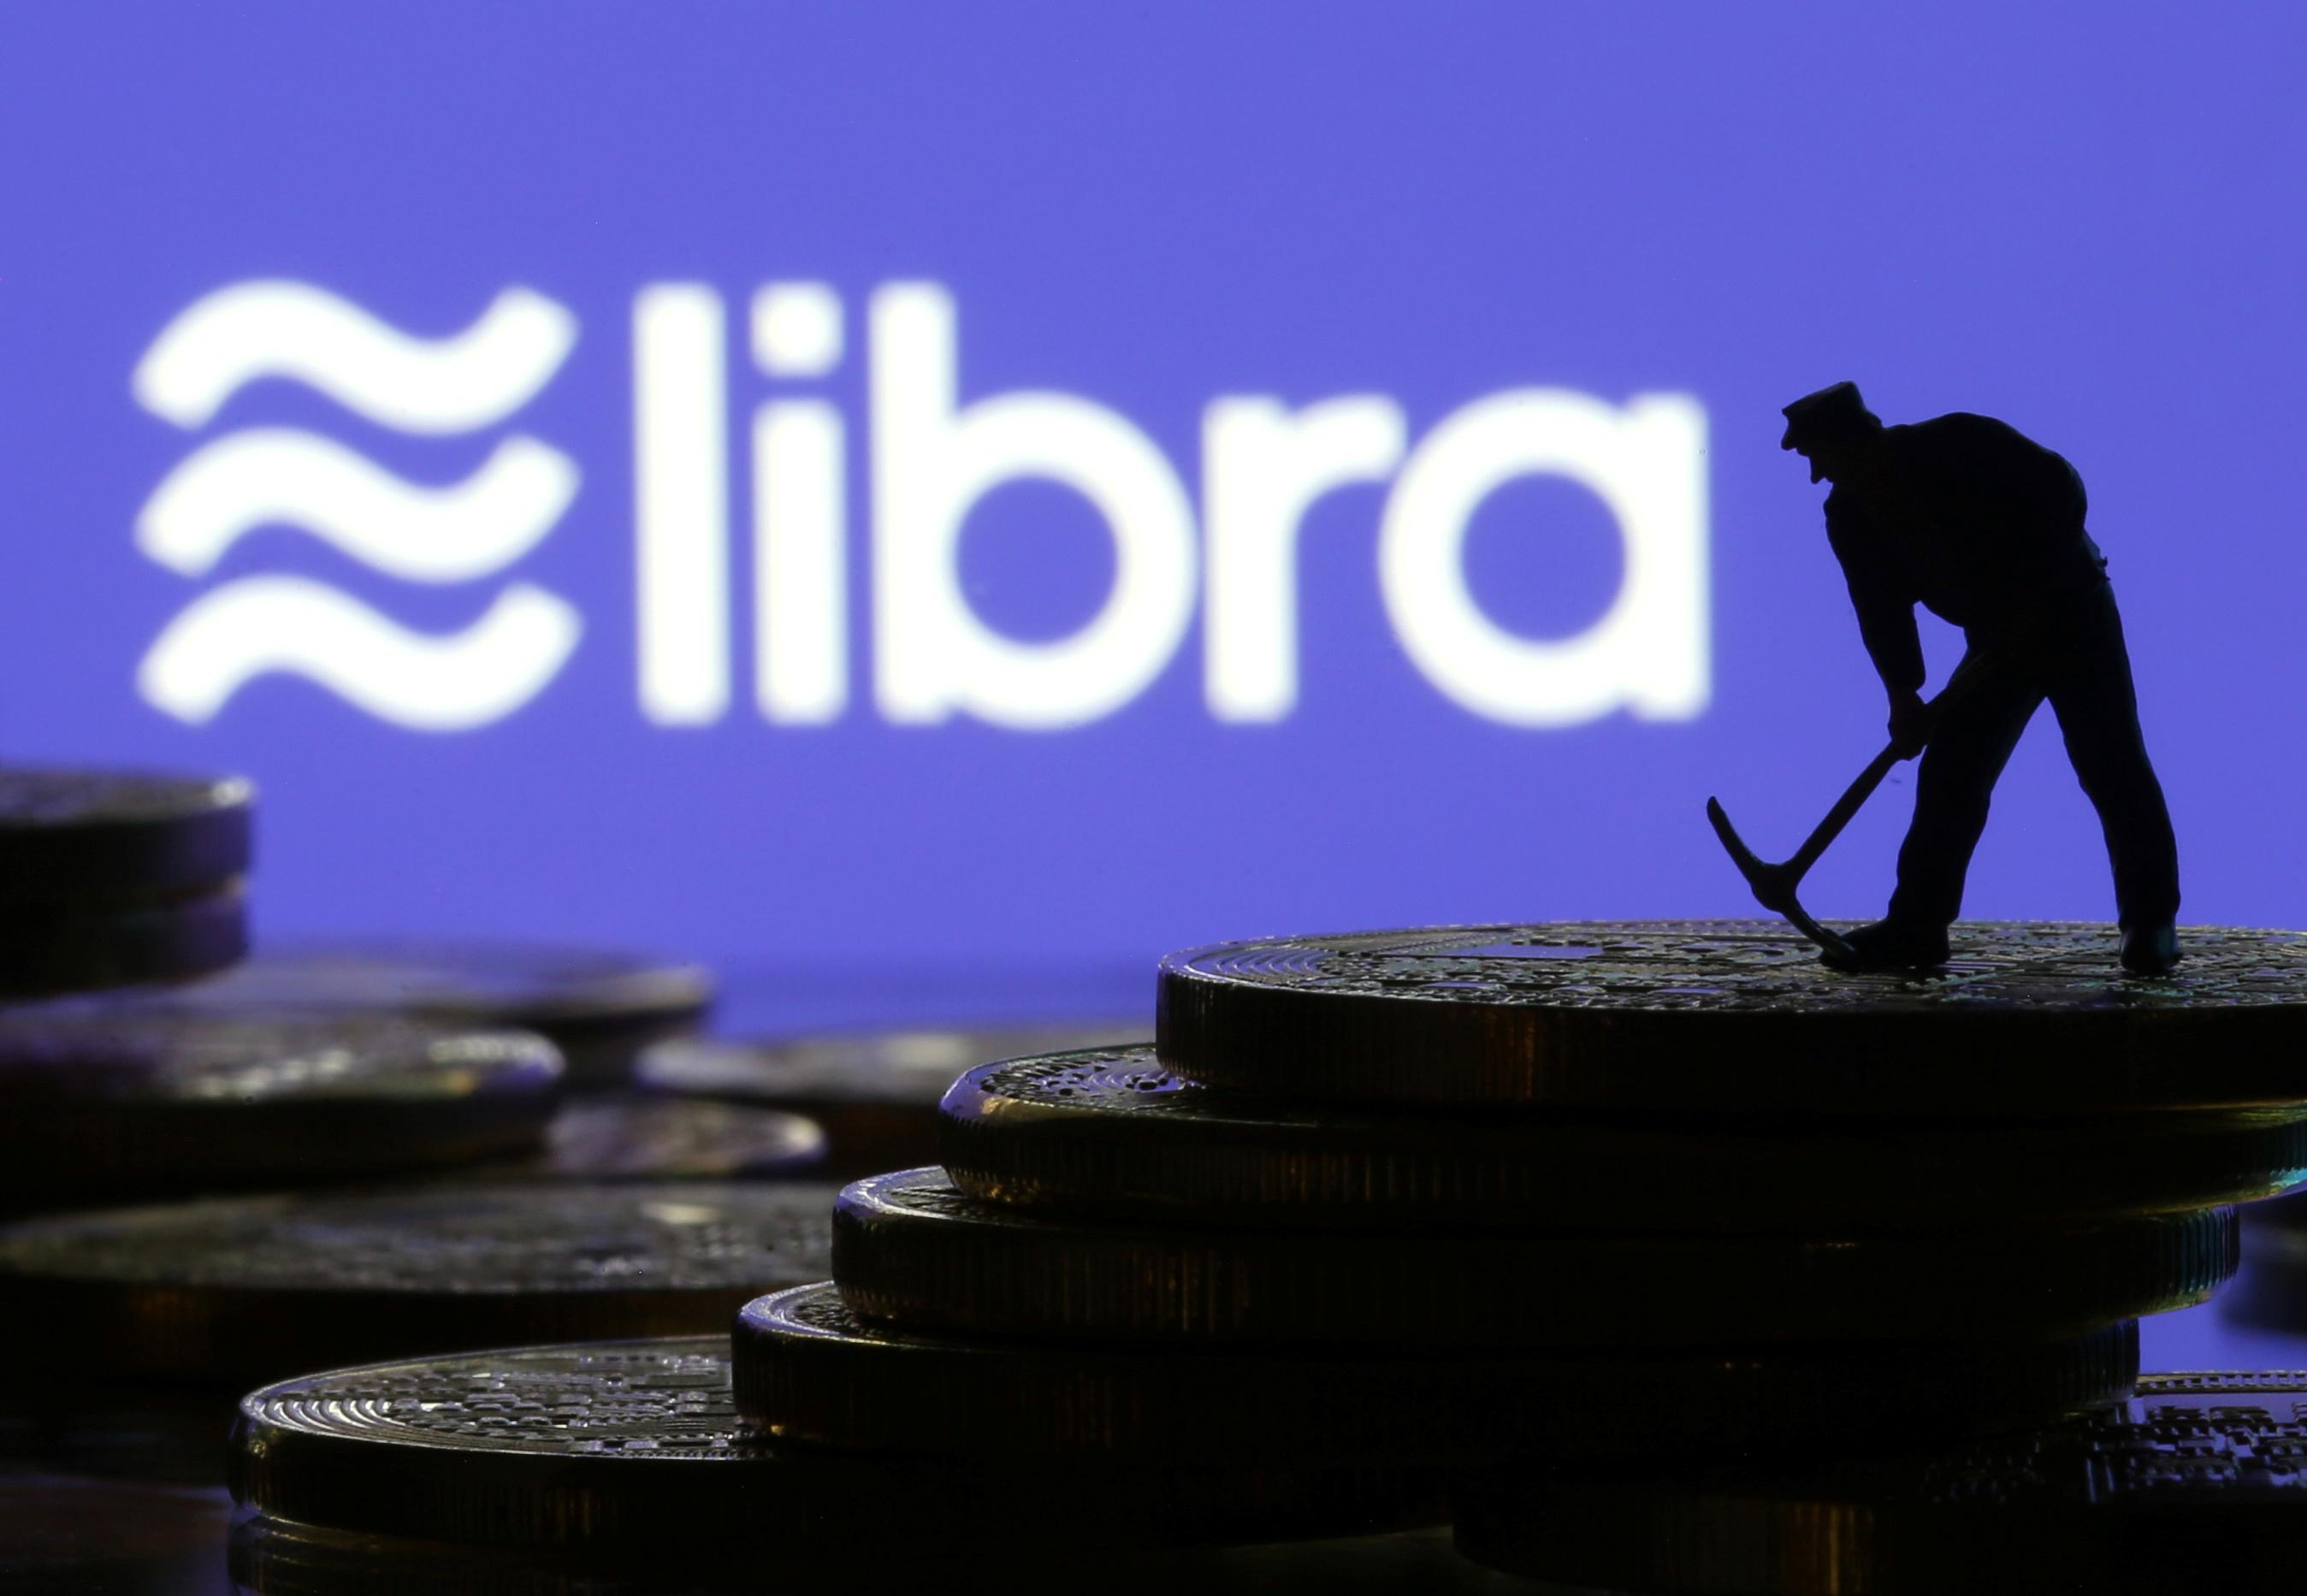 Co-founder of Facebook blockchain: Libra 'absolutely not' in jeopardy